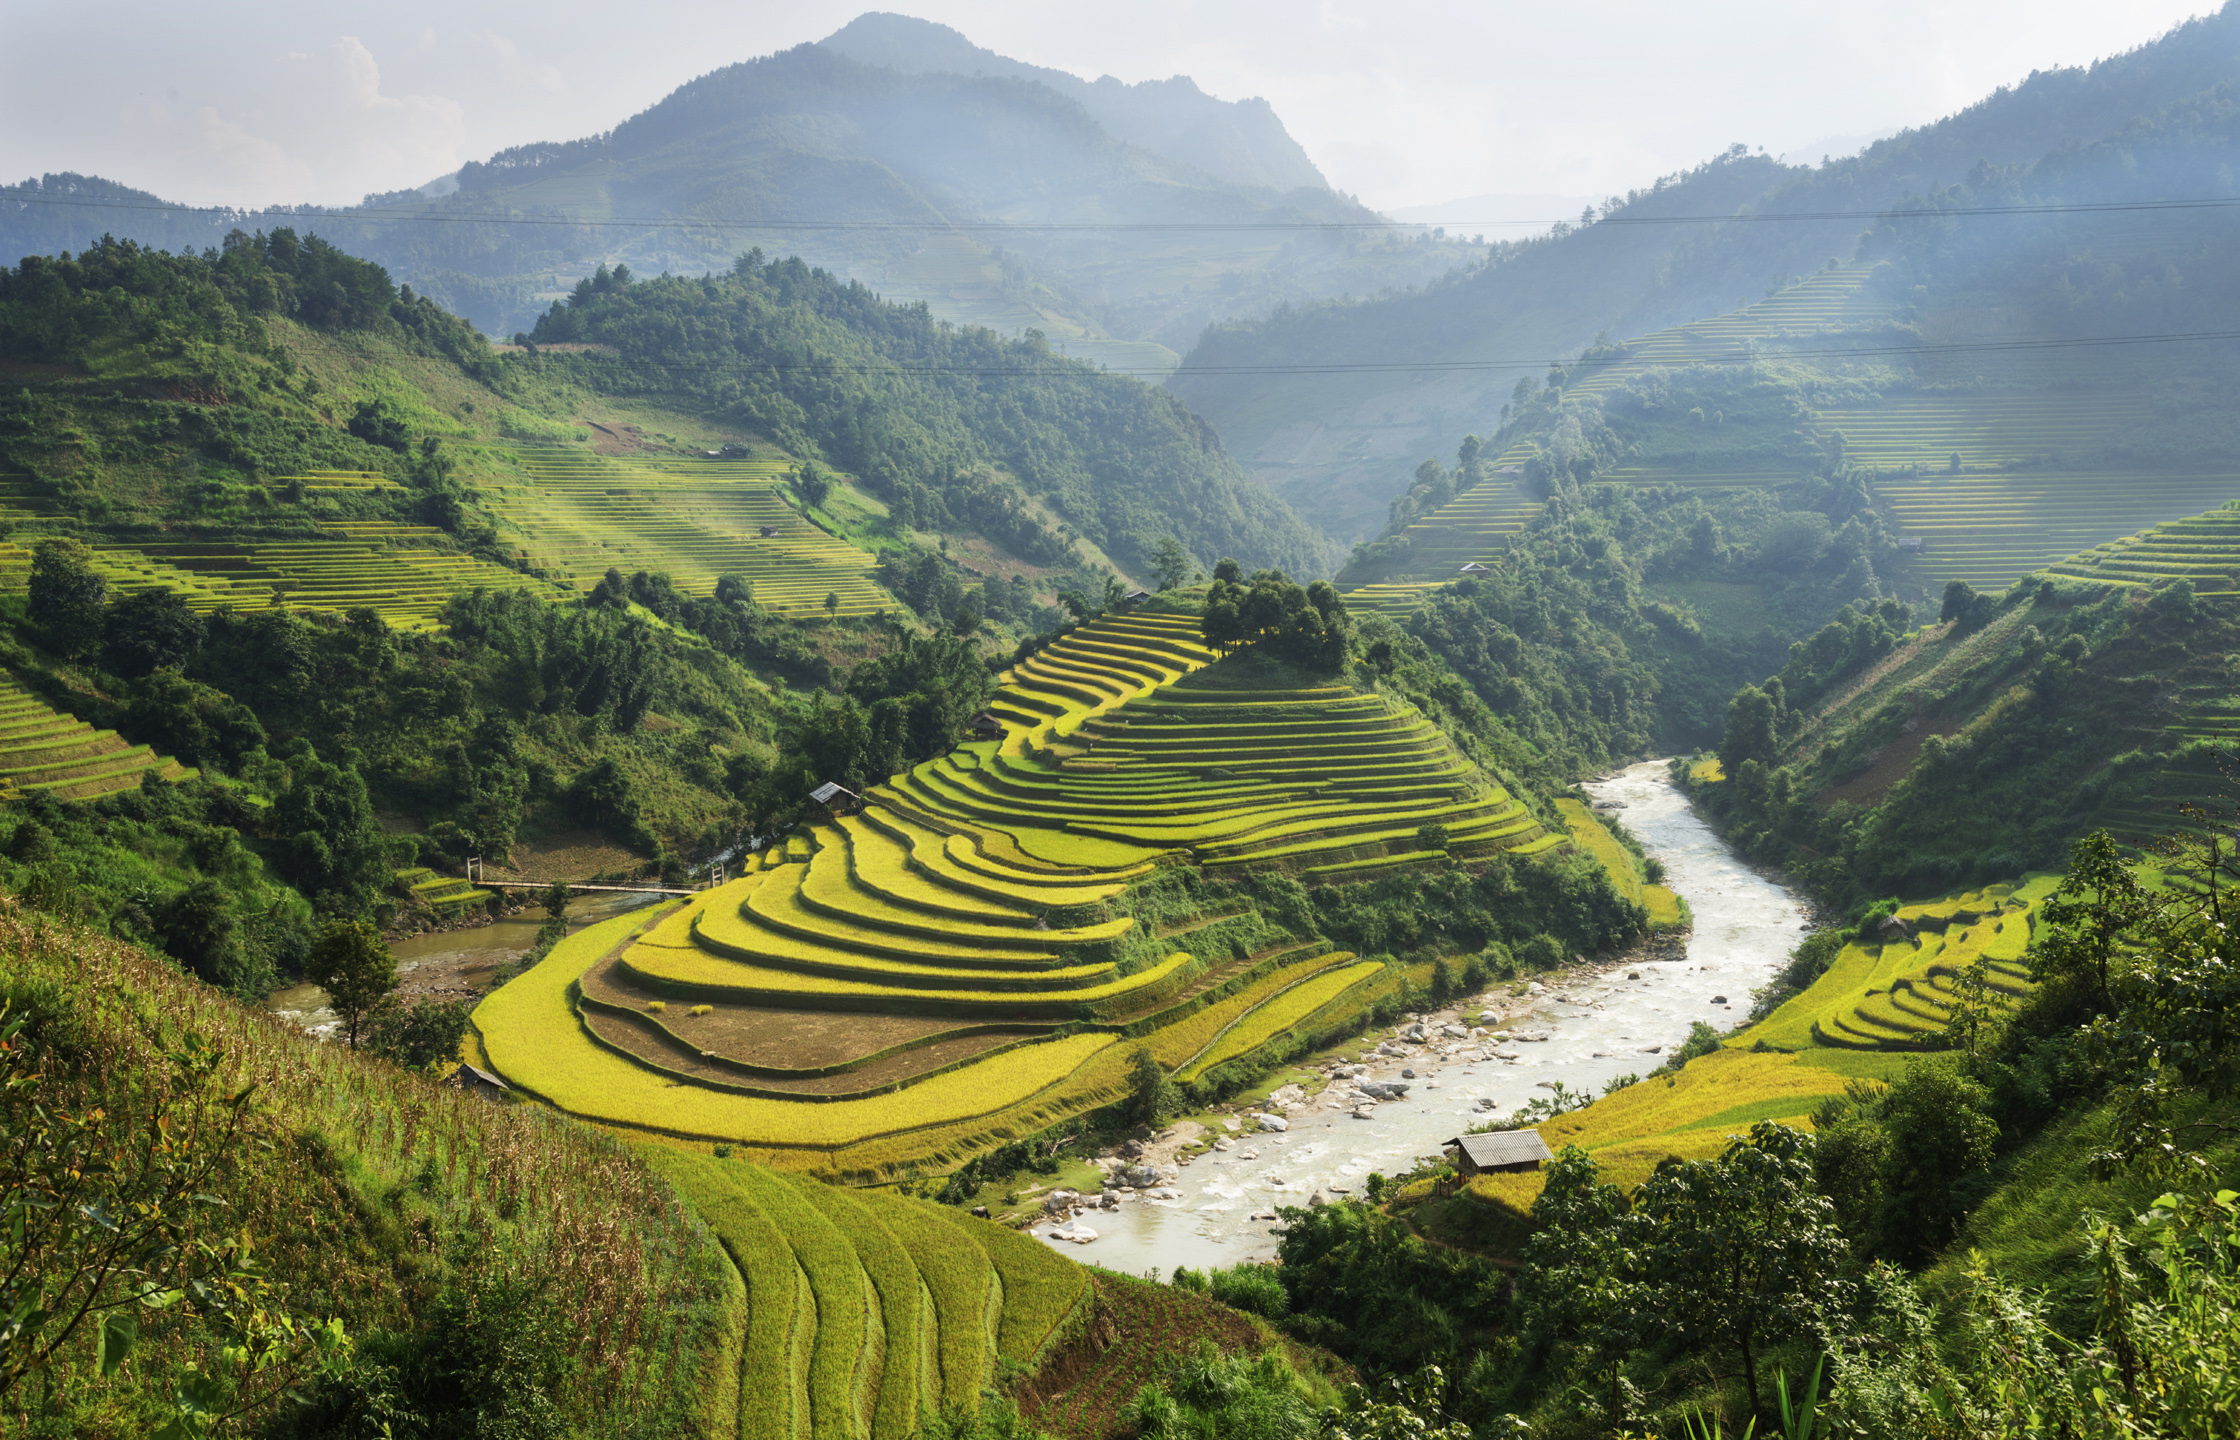 Nui Hoang Lien Nature Reserve The Northwest, Hoàng Liên National Park - exceptionally scenic district of Sapa ...